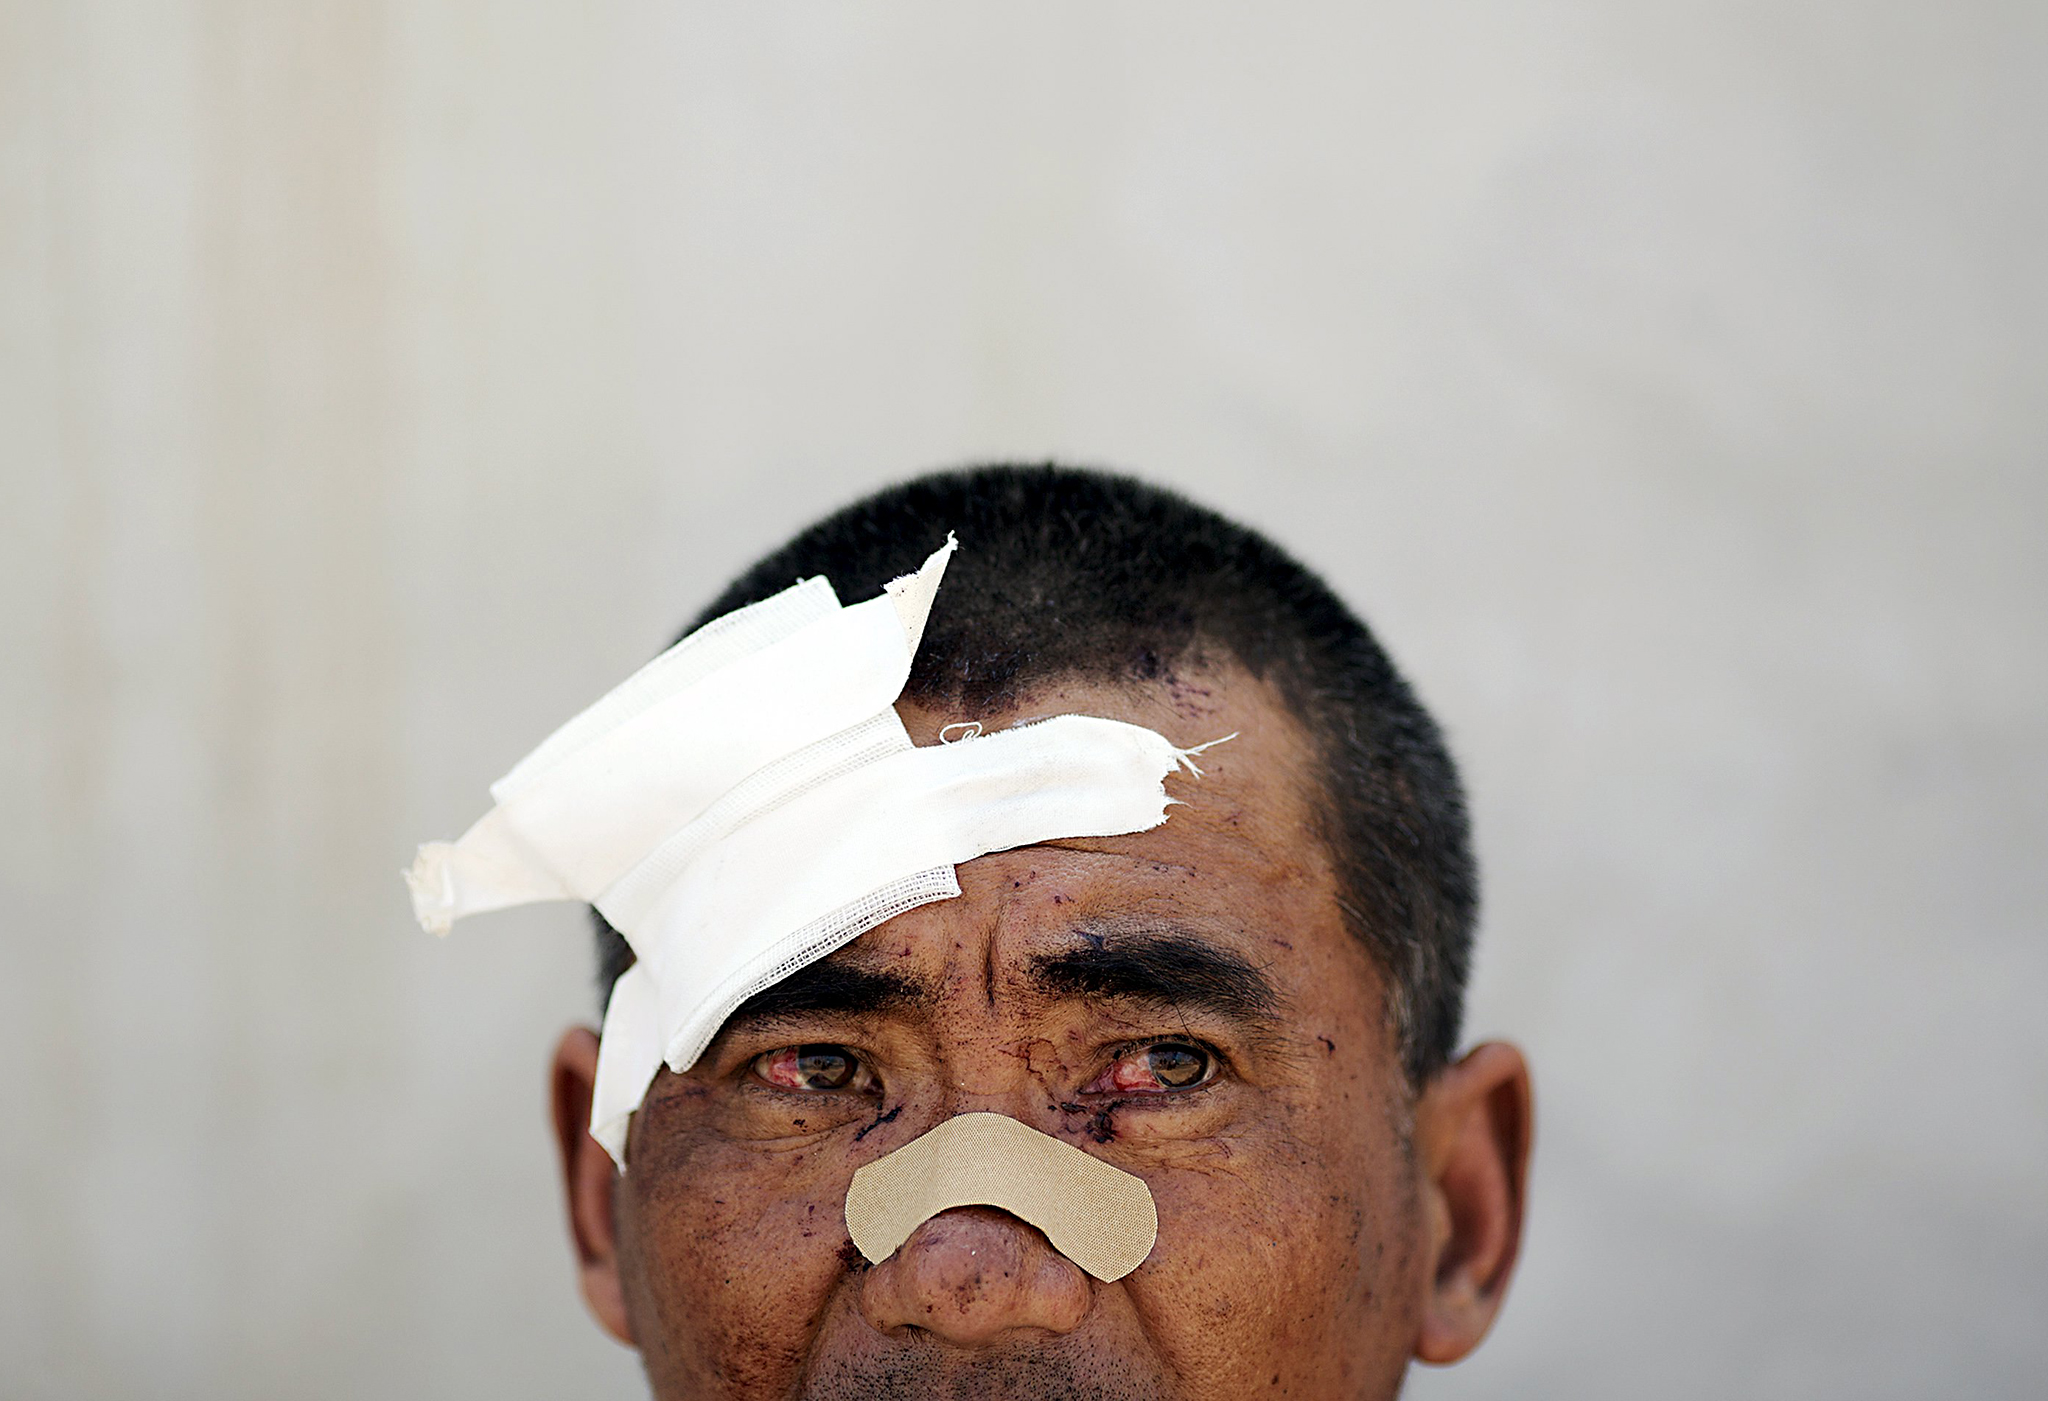 An injured man evacuated from the residential area near the explosion site looks towards pluming smoke in Binhai new district in Tianjin, China August 13, 2015. The death toll from two huge explosions that tore through an industrial area in the northeastern Chinese port of Tianjin more than doubled to 44, the official Xinhua news agency said on Thursday.  REUTERS/Damir Sagolj